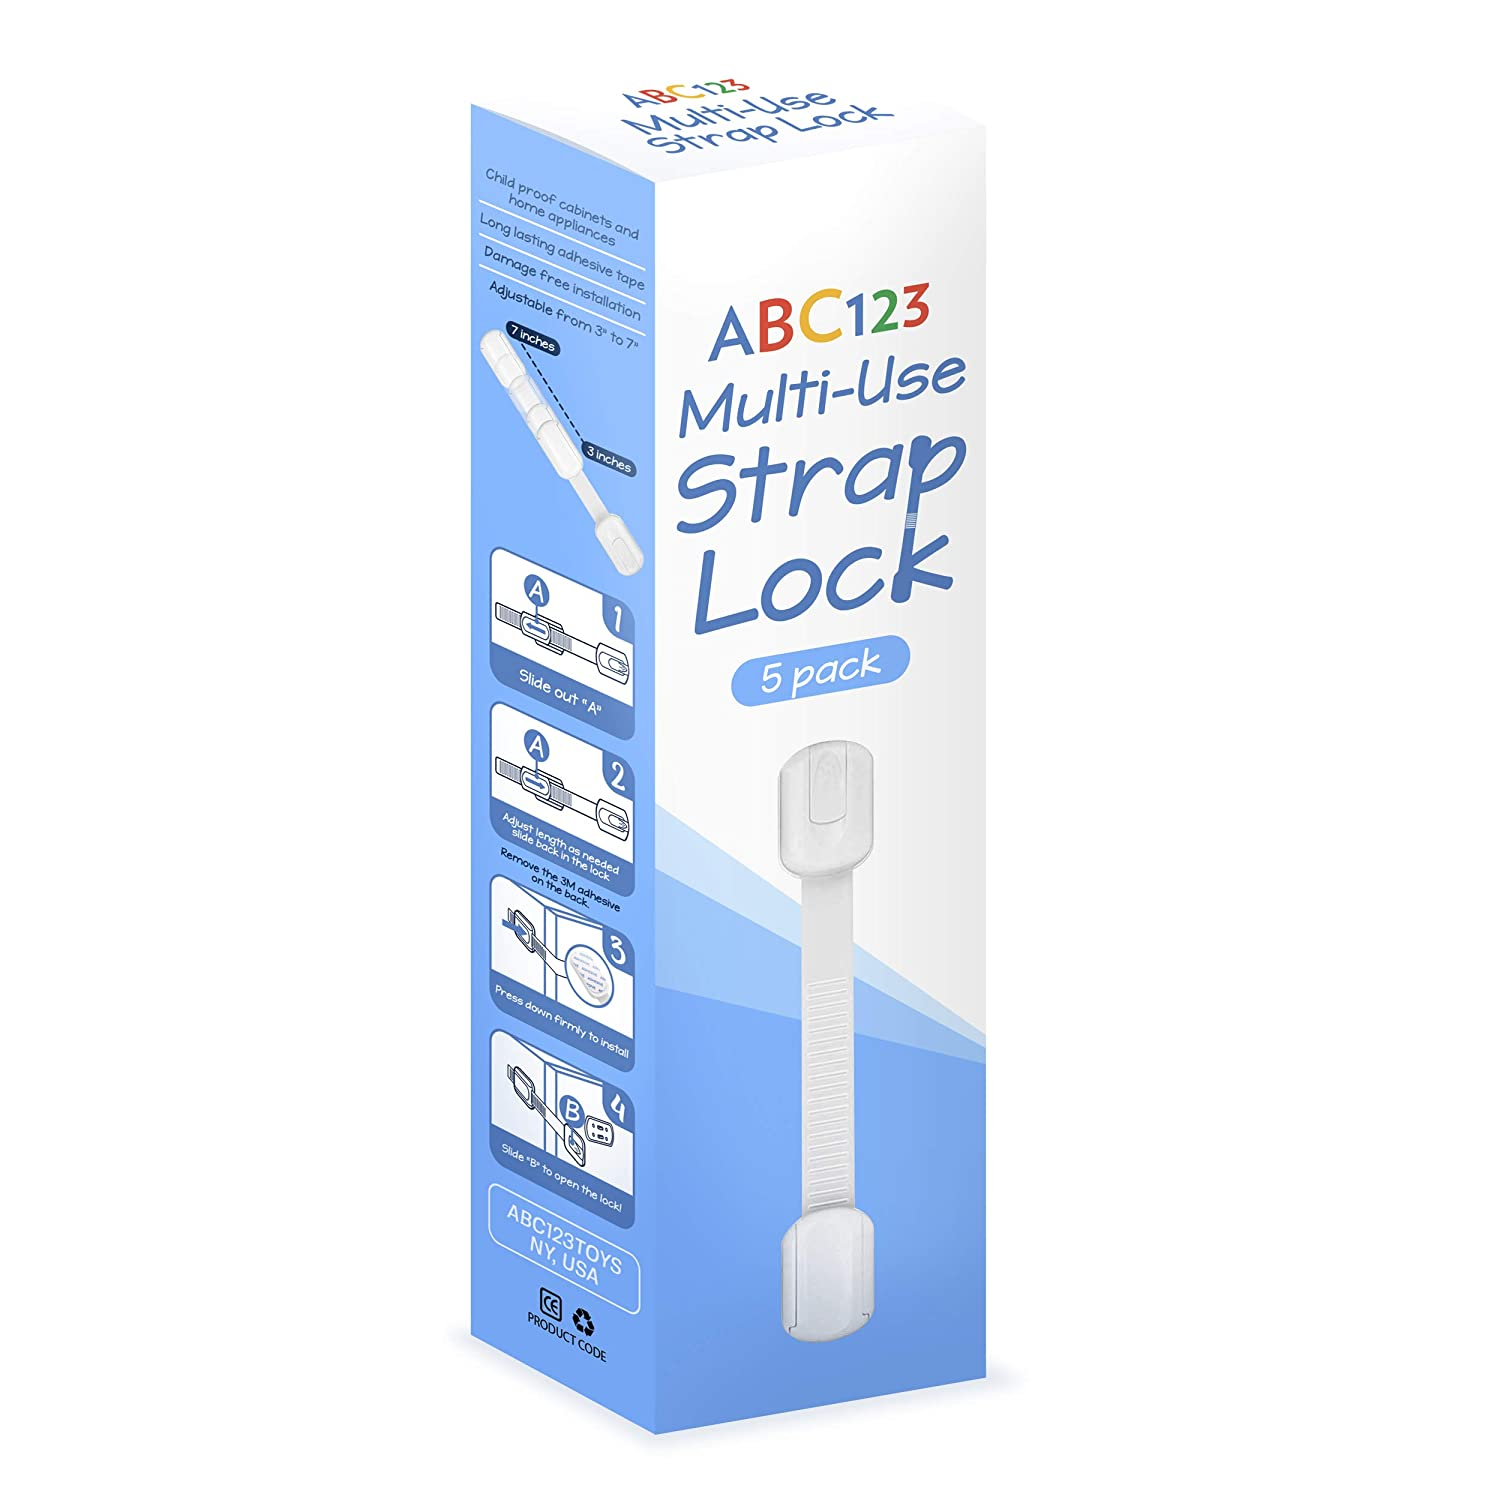 ABC123 Rare - Child Safety Strap Locks Max 41% OFF for Pack Baby 5 Proofing Cab